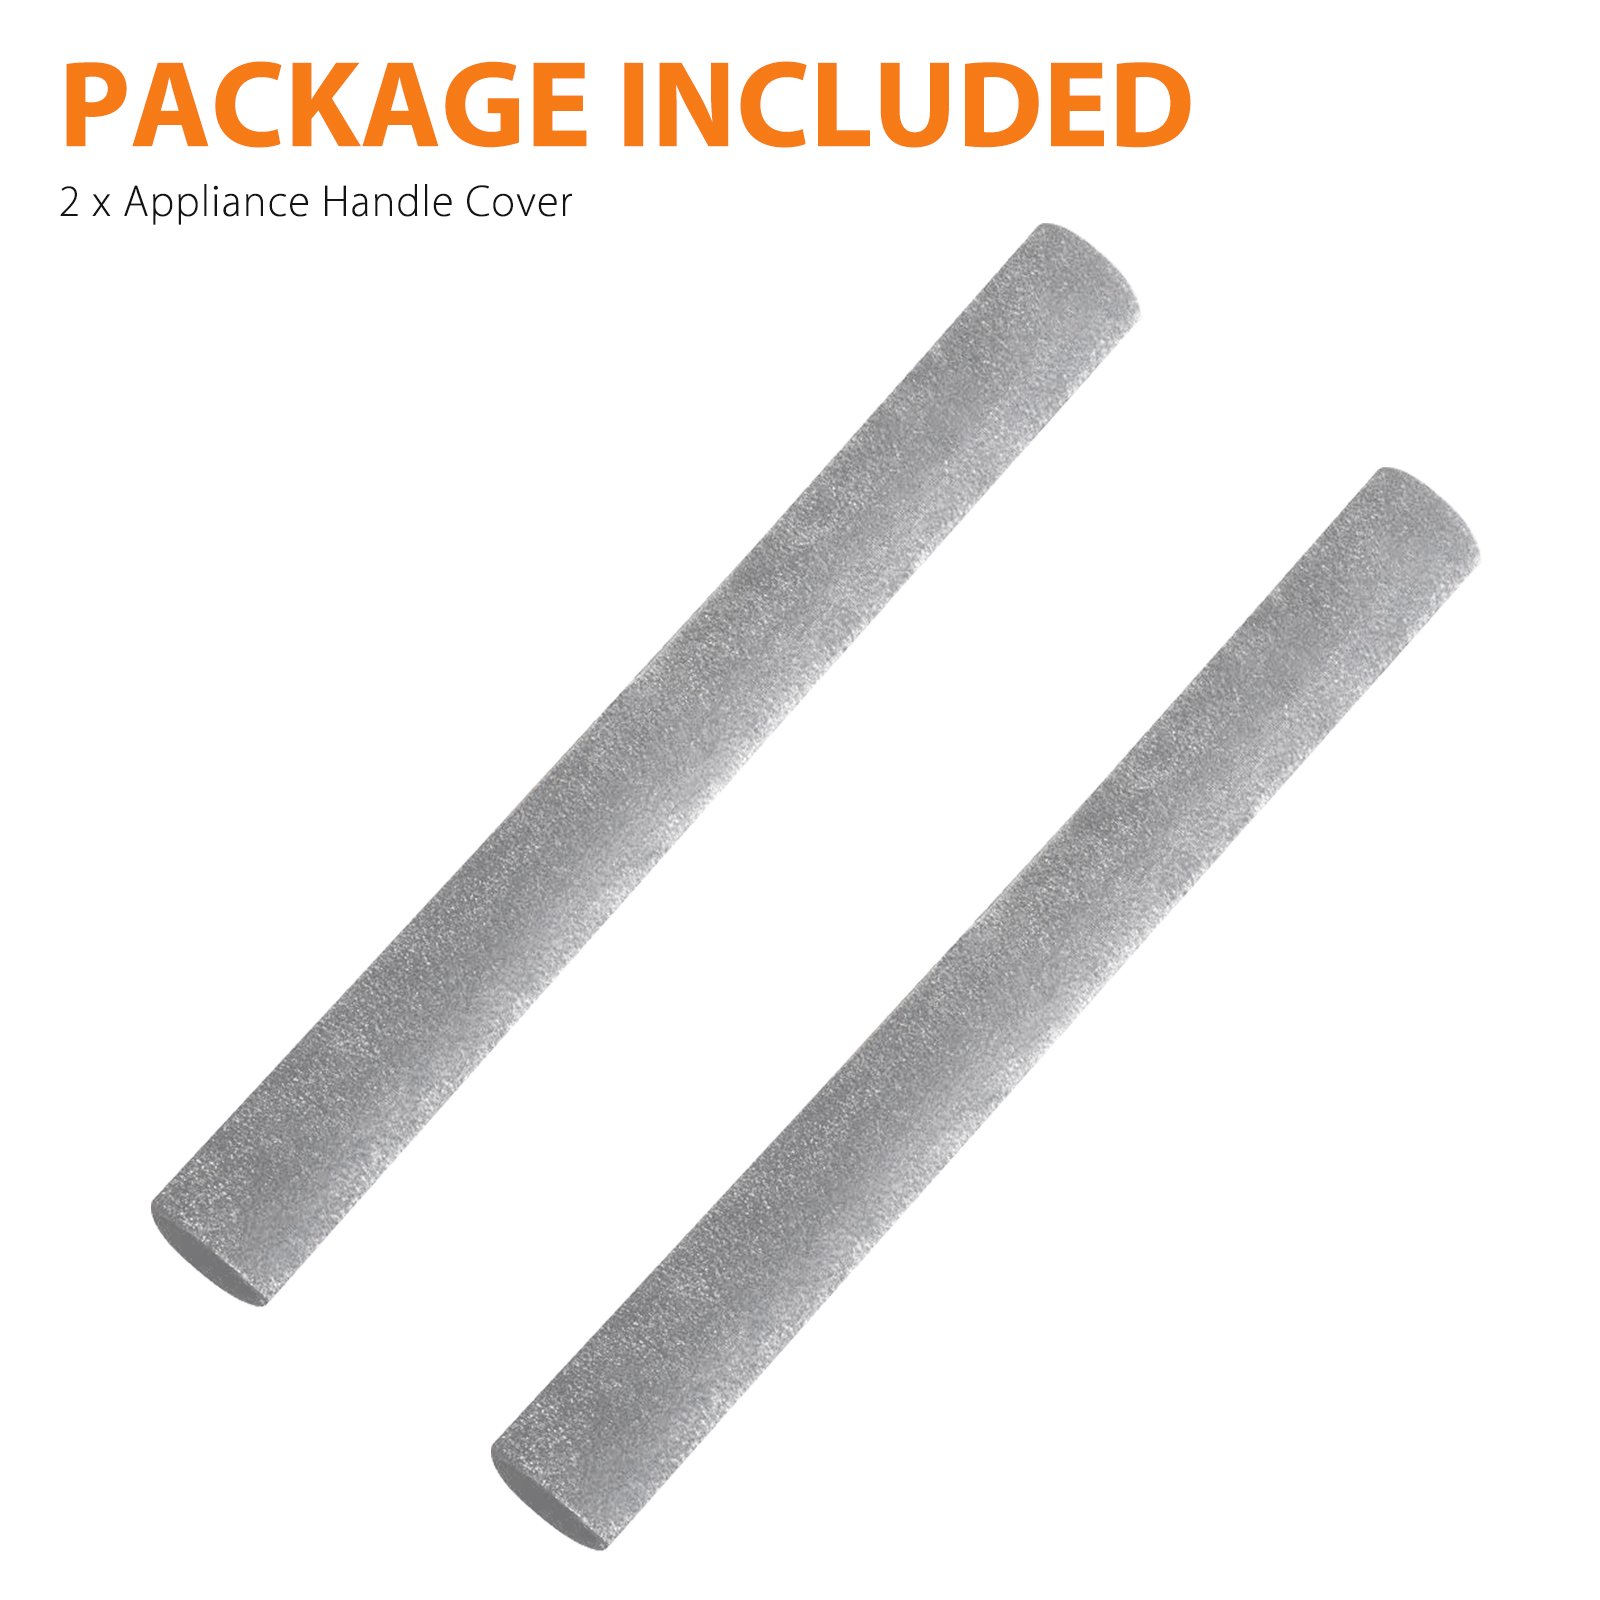 2-4pcs-Kitchen-Refrigerator-Oven-Door-Handle-Cover-Home-Decor-Protector-Smudges thumbnail 10